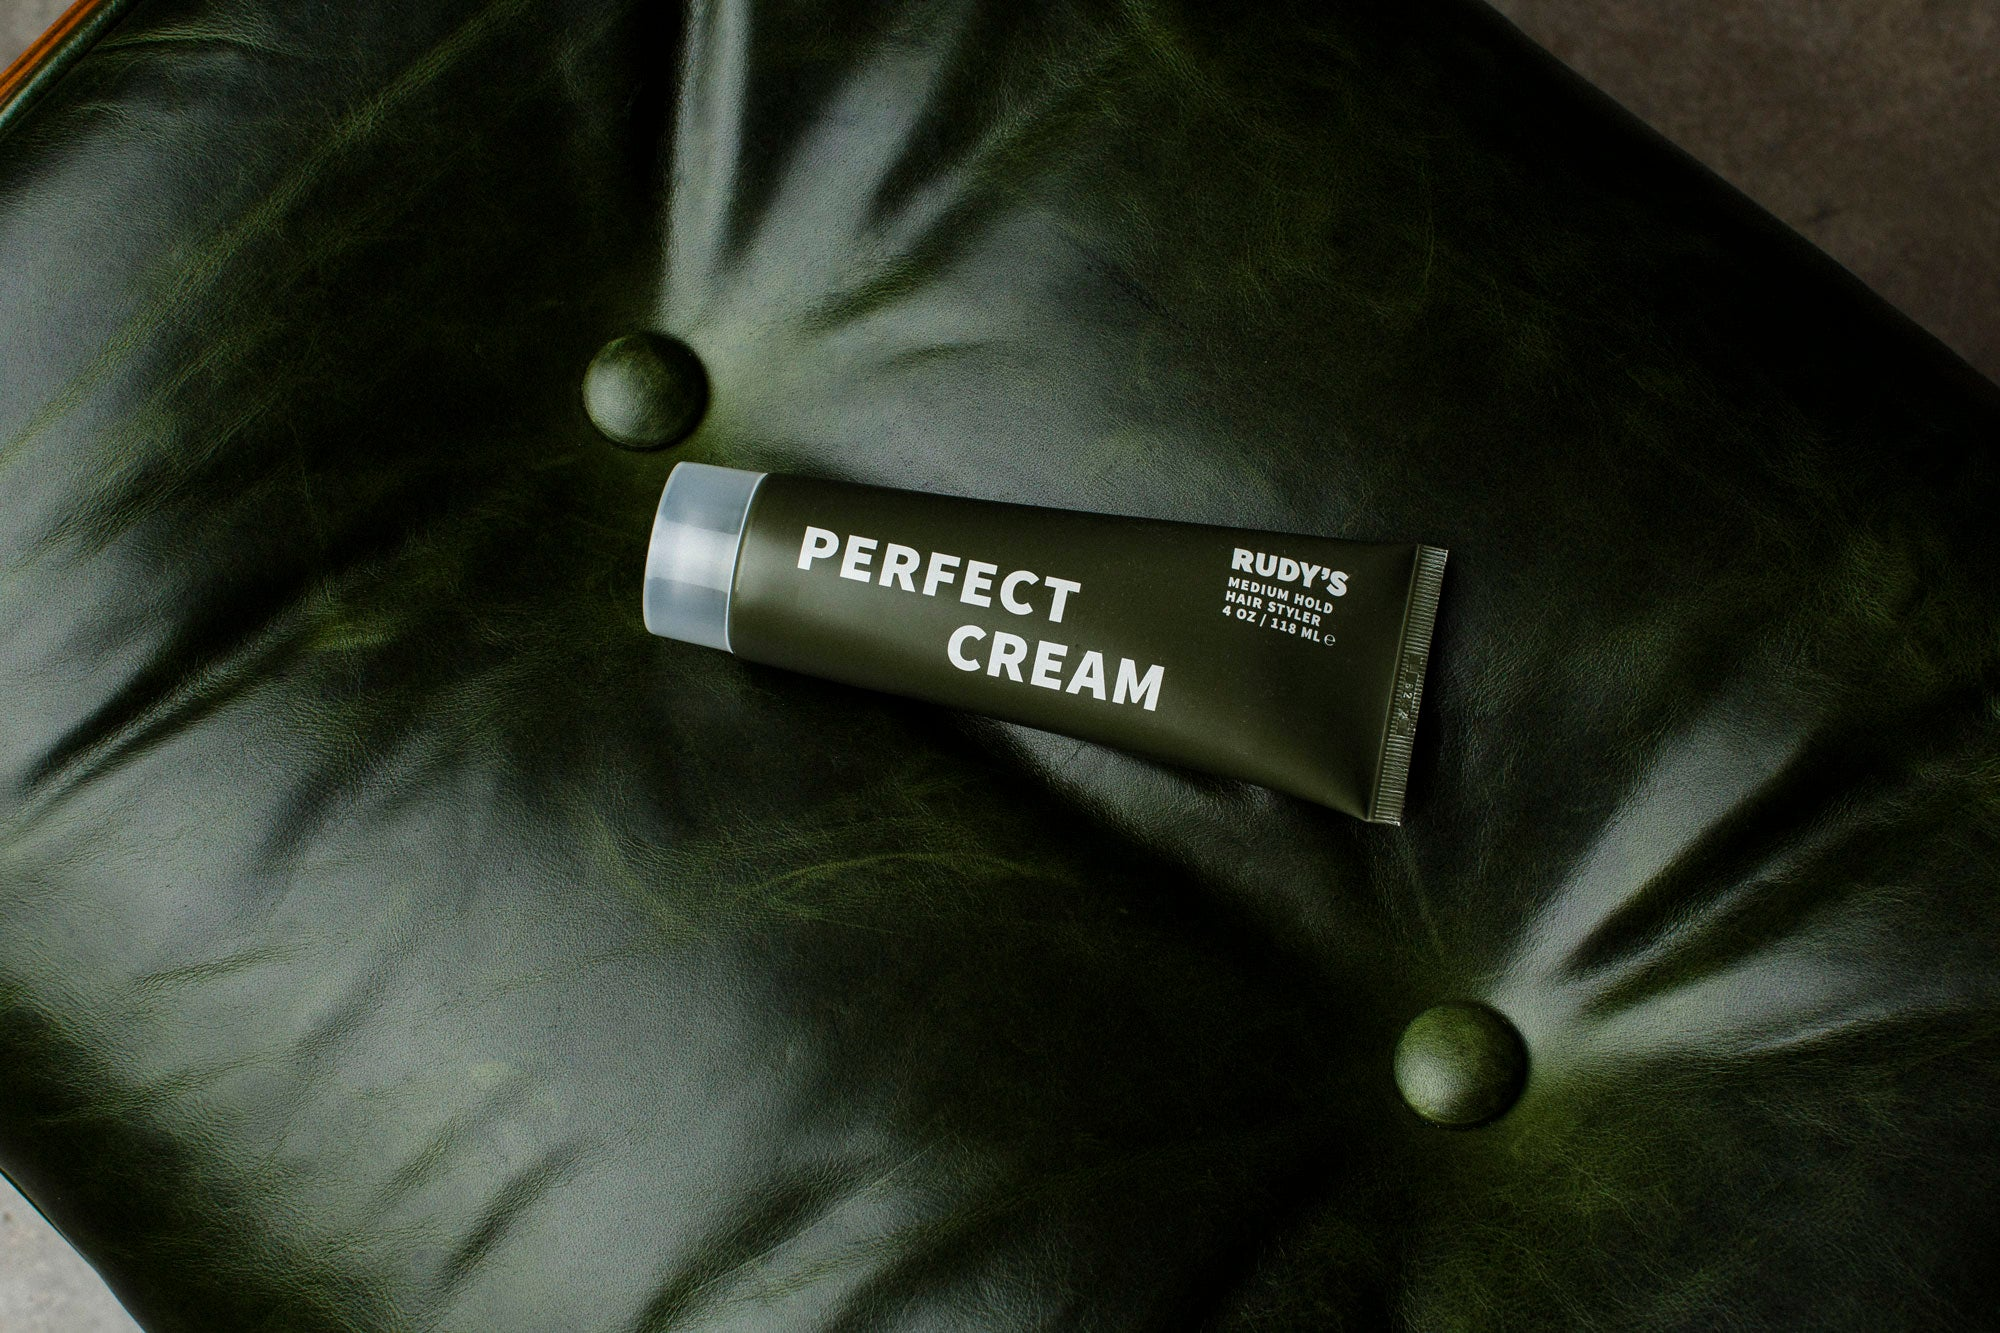 Image of Perfect Cream tube lying on green leather chair